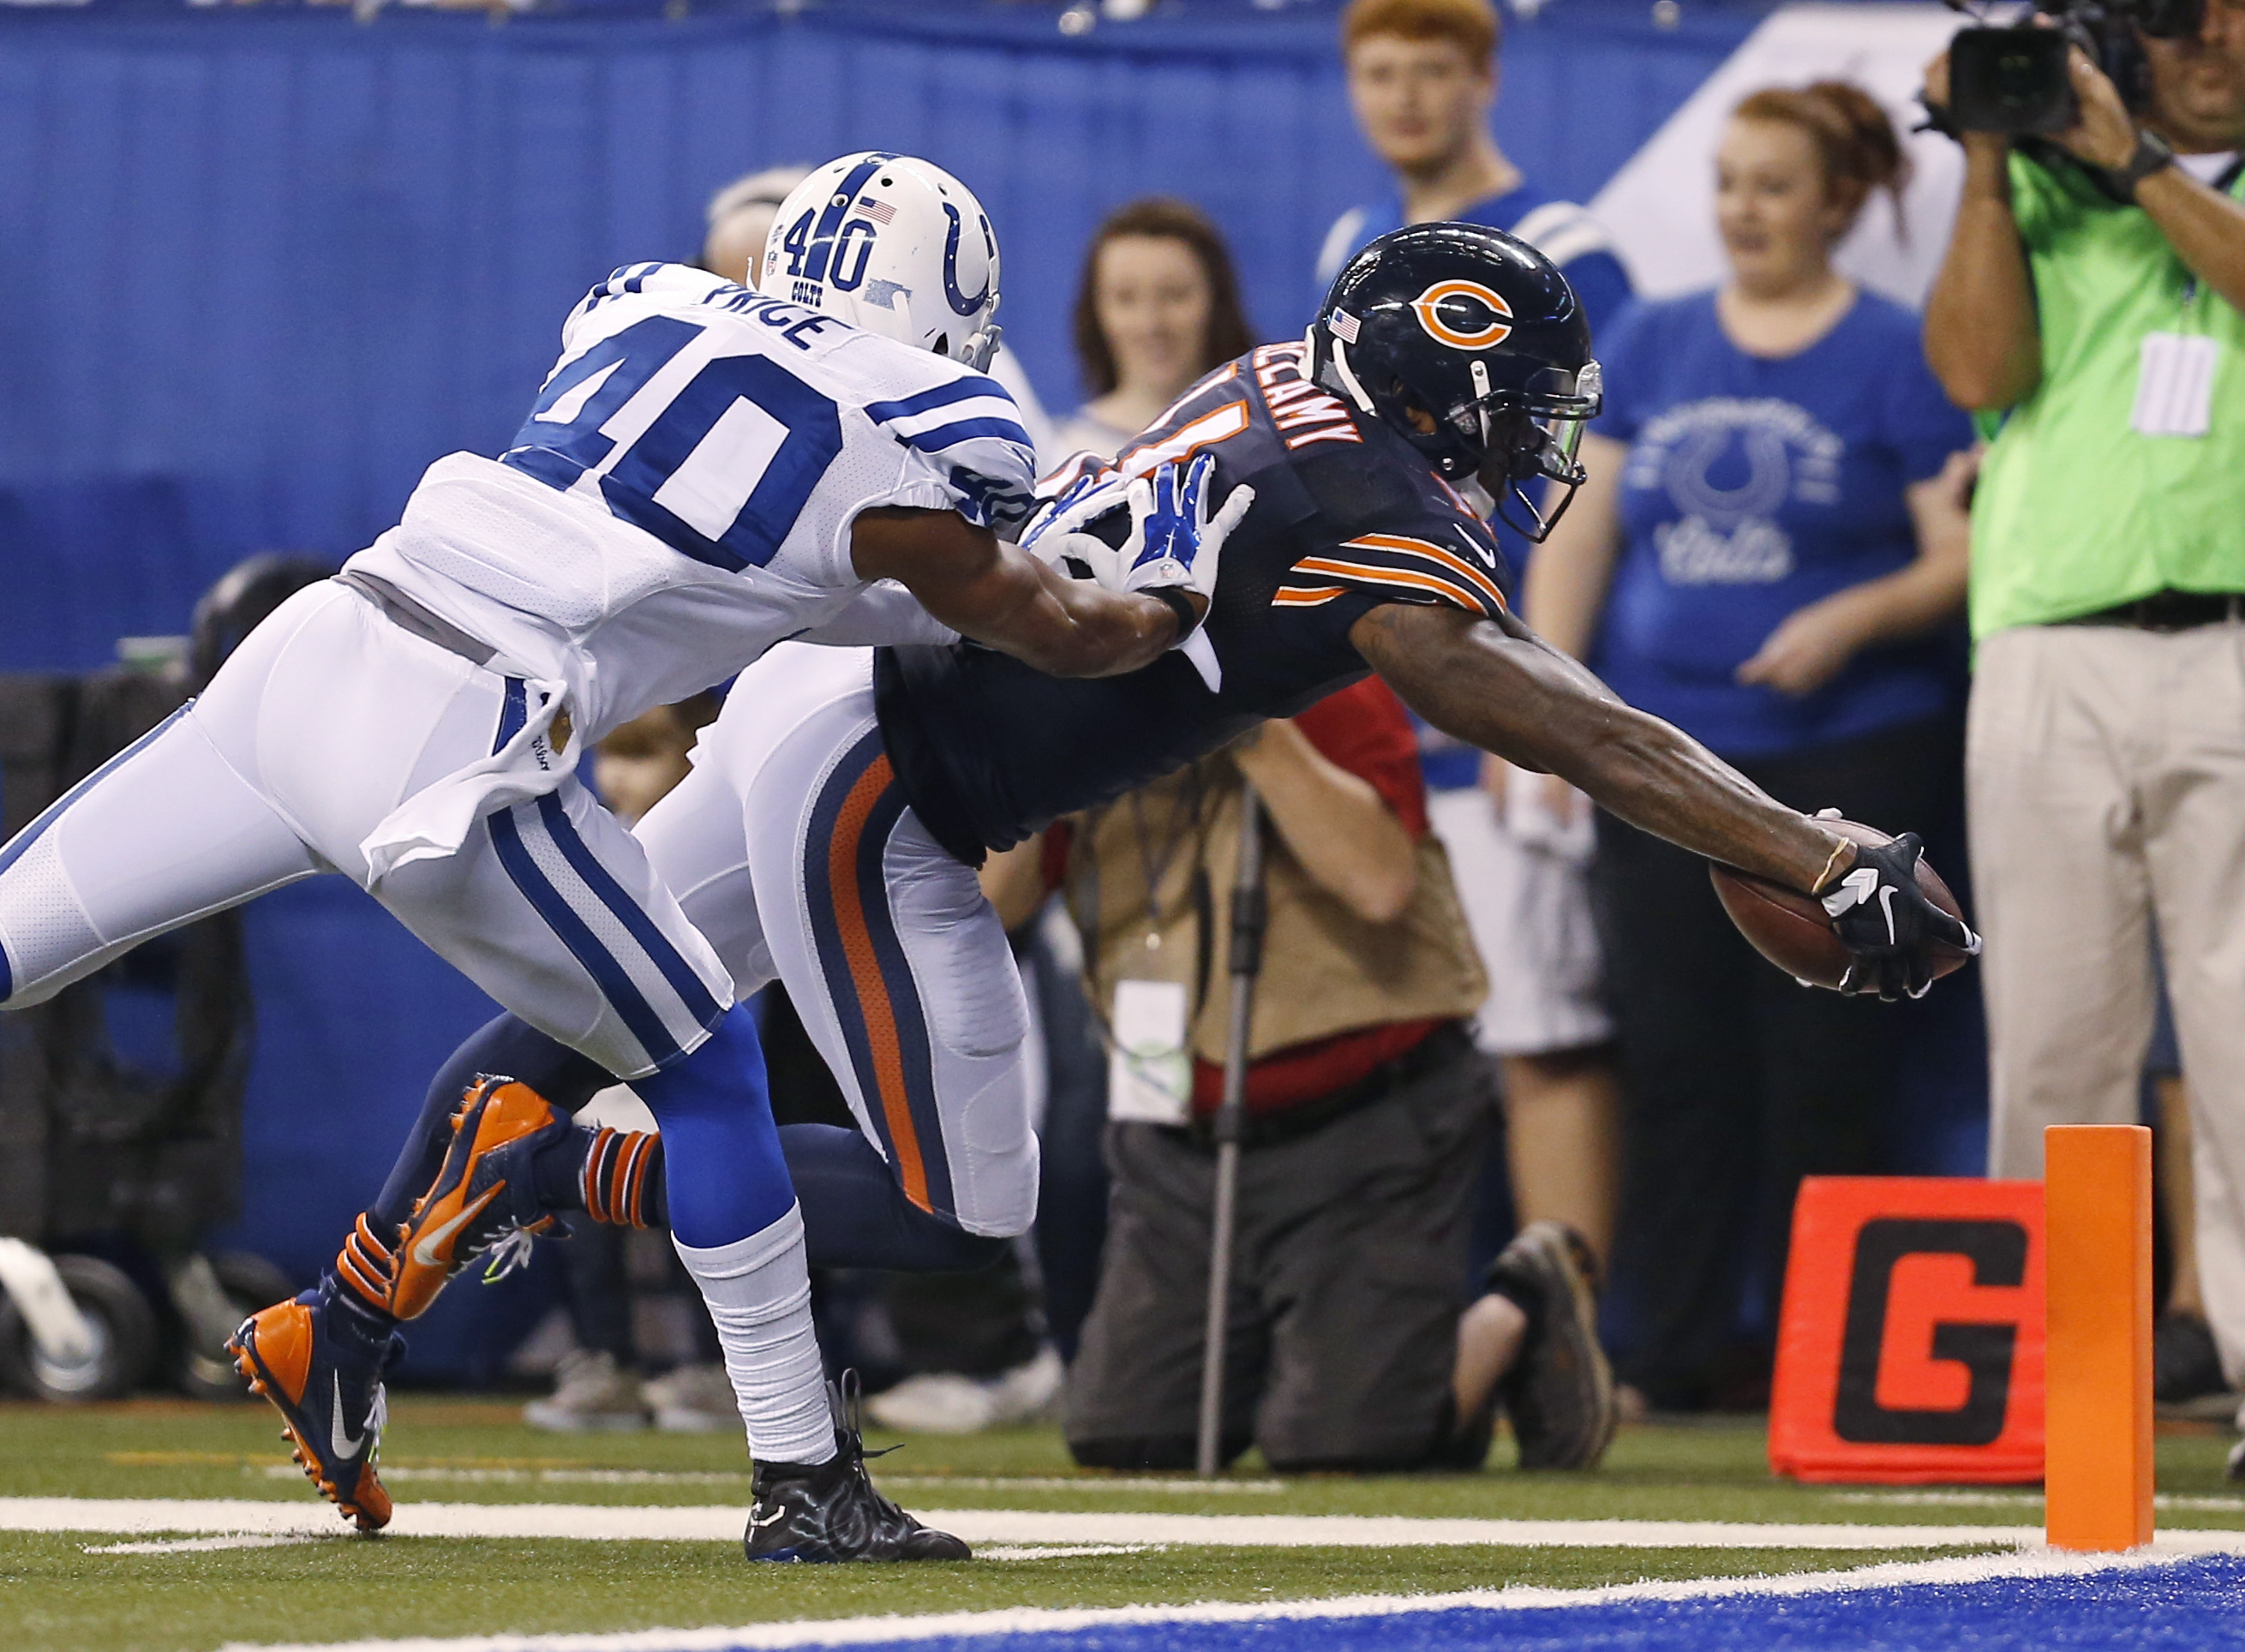 Chicago Bears wide receiver Josh Bellamy (11) dives in for a touchdown in front of Indianapolis Colts cornerback Sheldon Price (40) during the second half of an NFL preseason football game in Indianapolis, Saturday, Aug. 22, 2015. (AP Photo/Sam Riche)